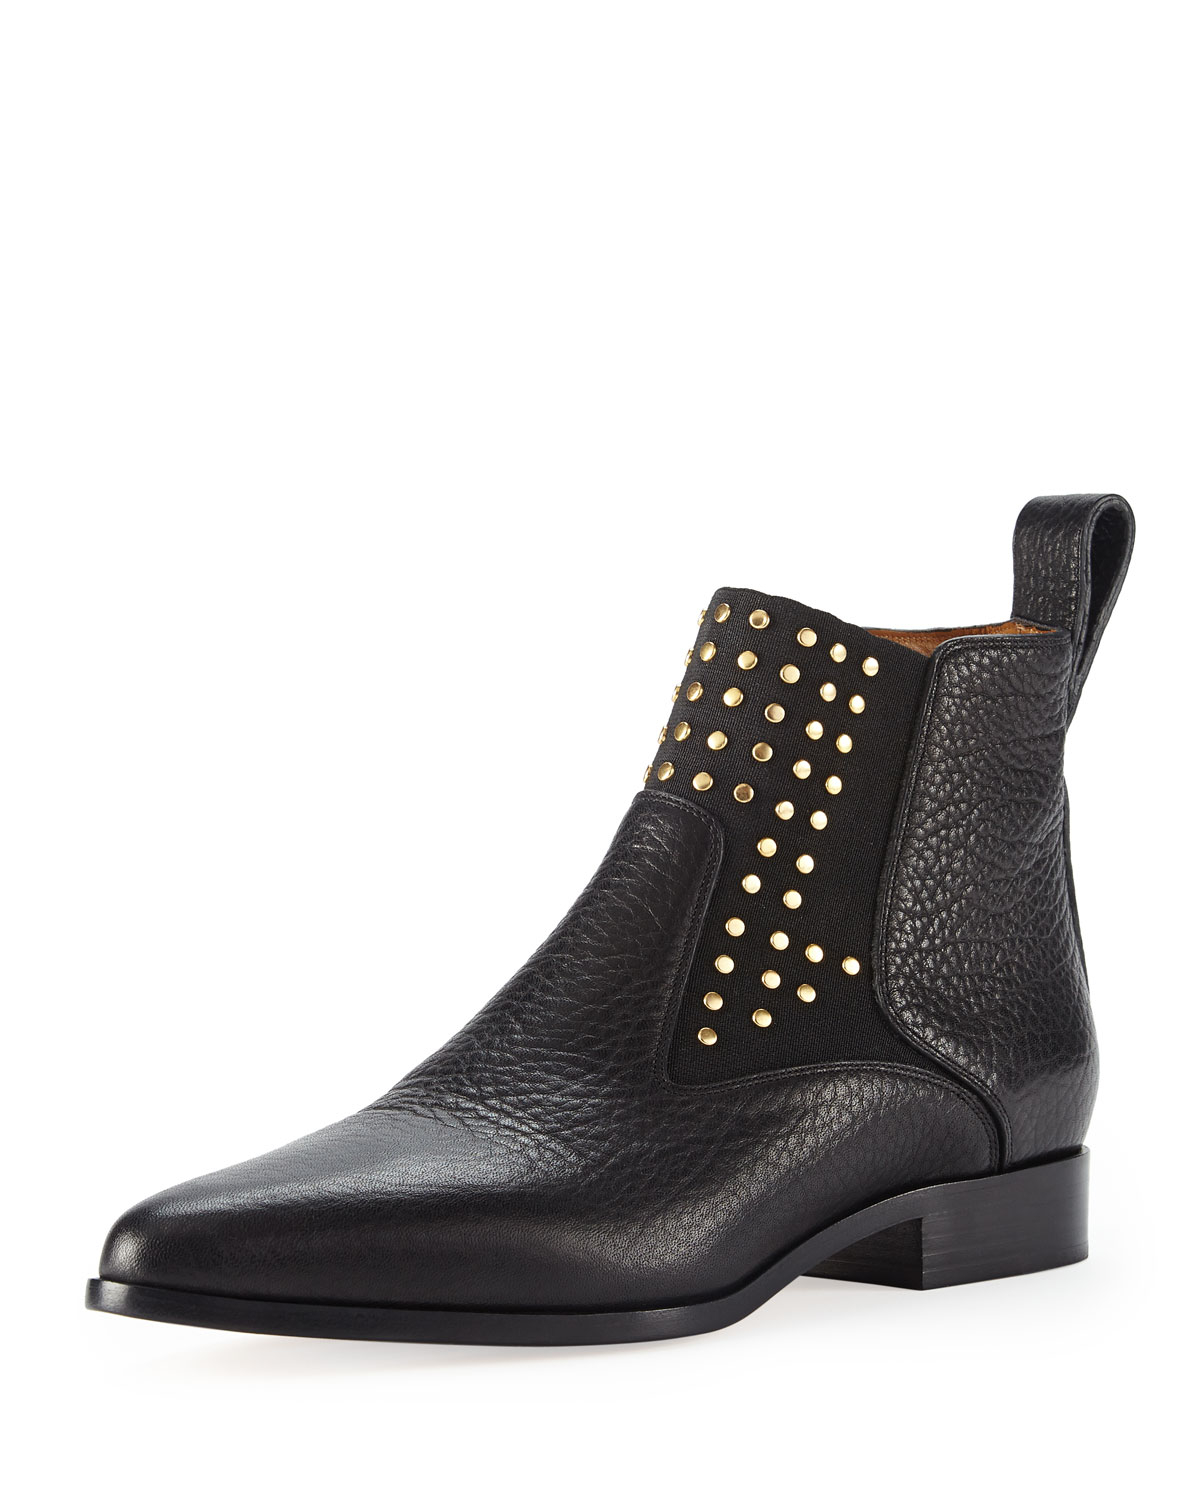 chlo studded leather chelsea boot in black lyst. Black Bedroom Furniture Sets. Home Design Ideas